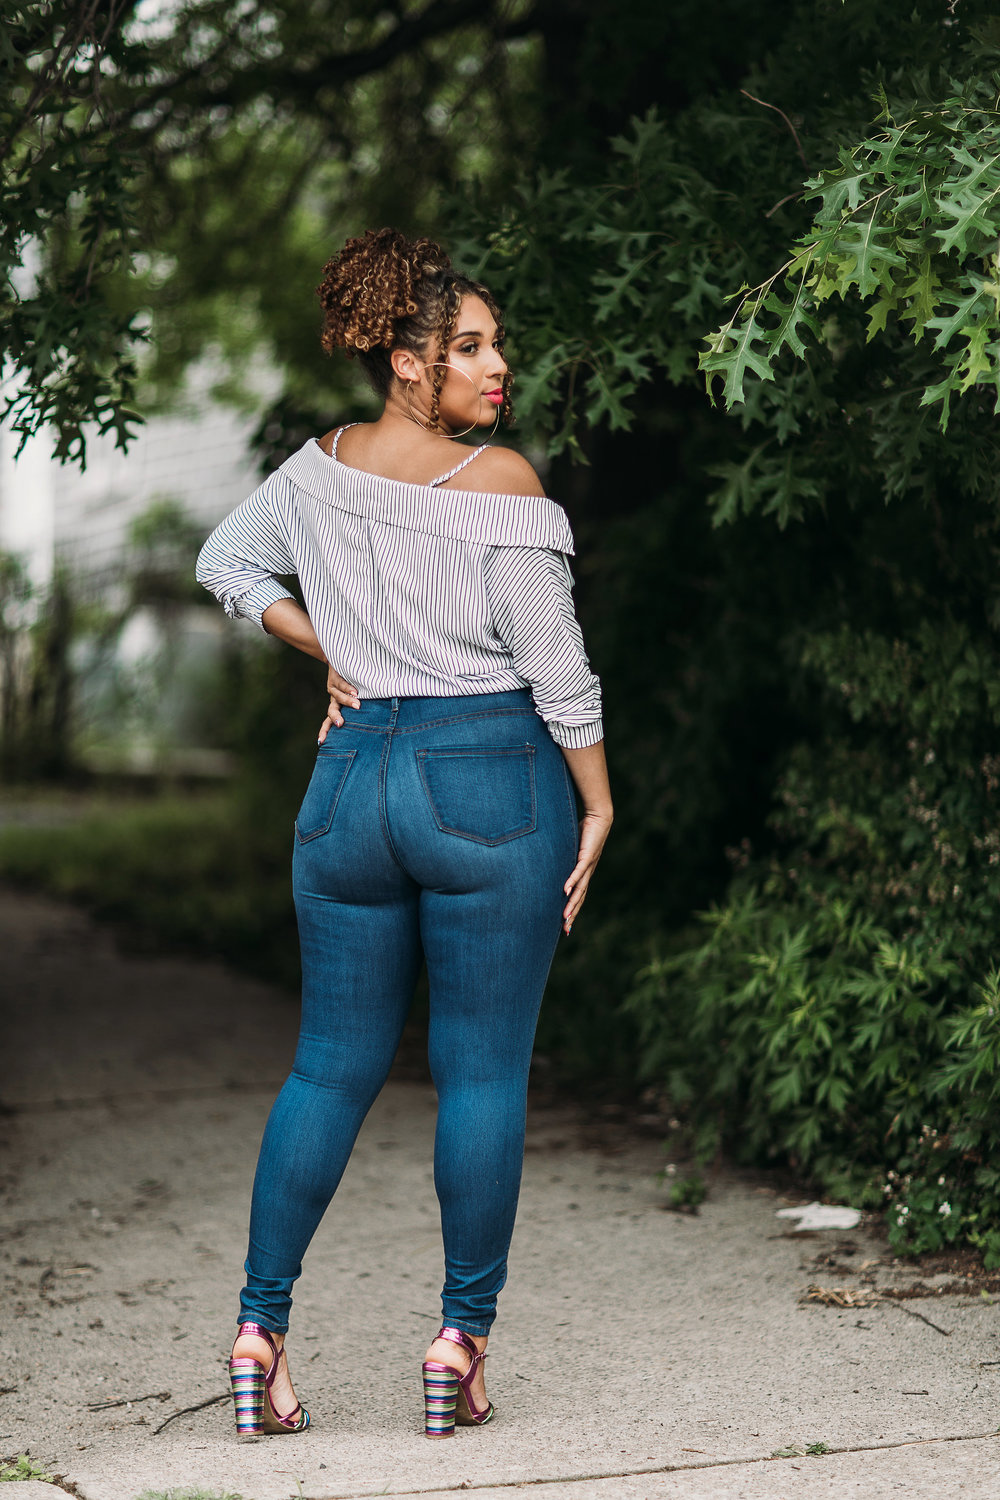 ab2bea1c63 Have you ever tried Fashion Nova jeans before  Are you obsessed like me  If  so let me know if you size up or down in the comments below!